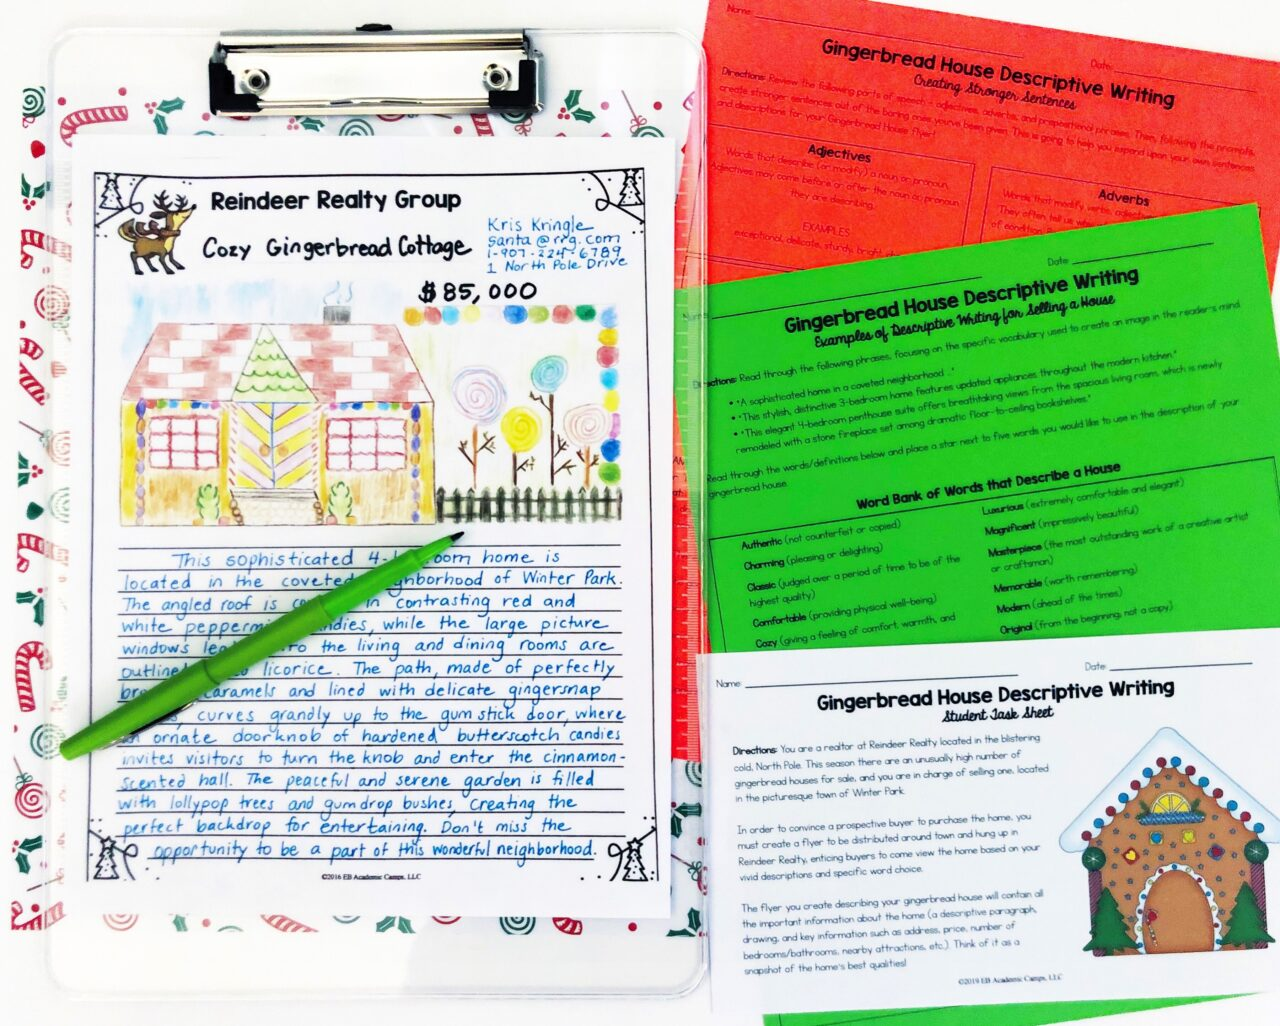 gingerbread house holiday writing activity for middle school